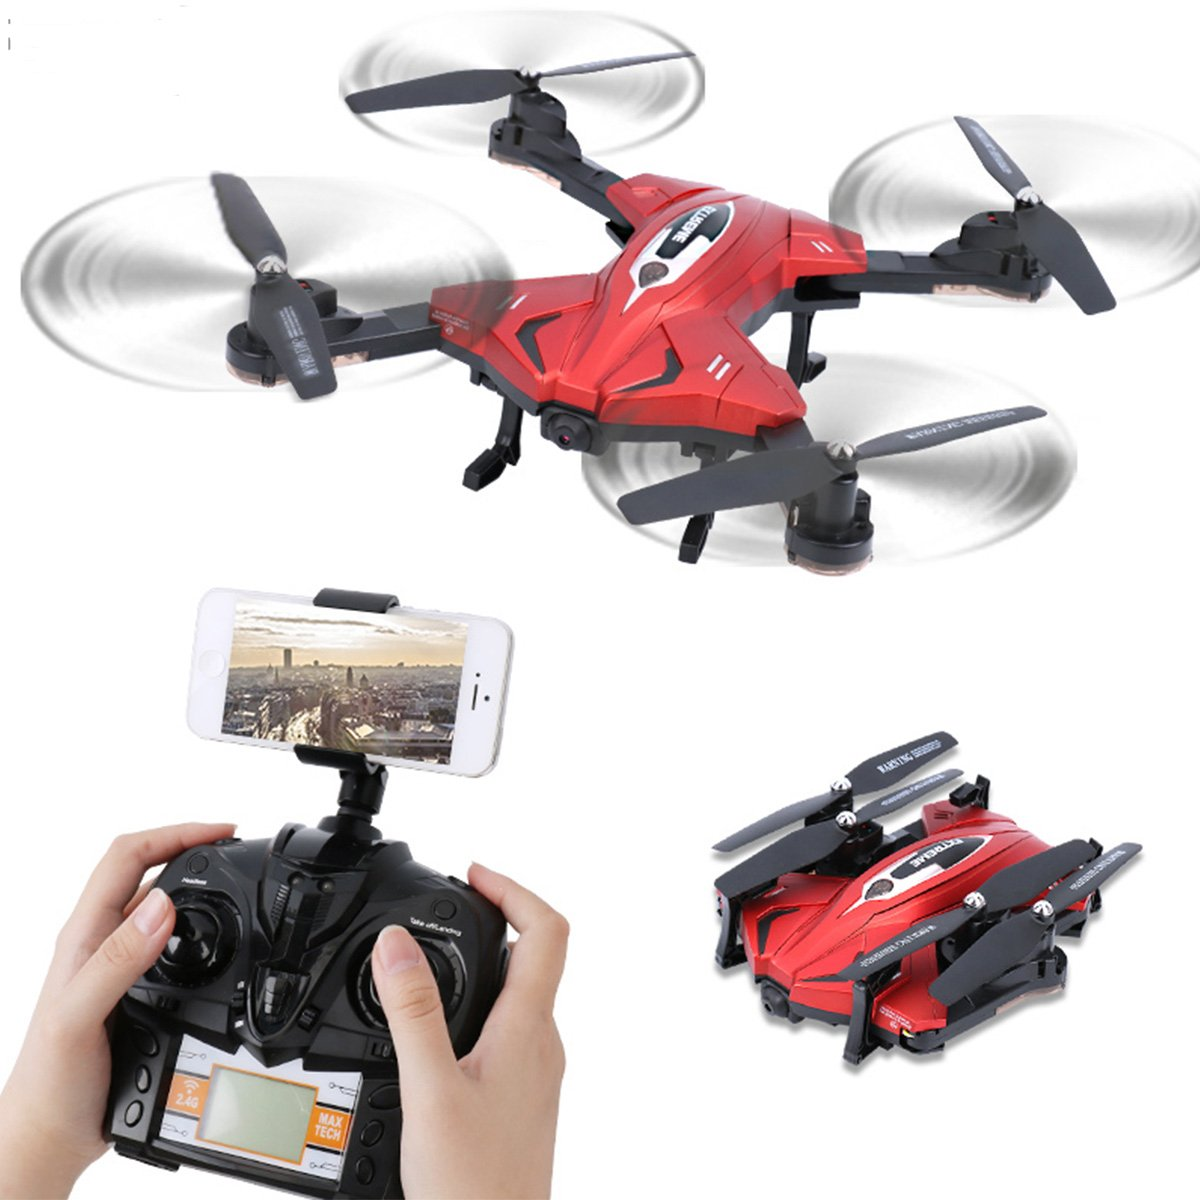 Dwi Dowellin Folding Drone With Camera 720P Live Video WIFI FPV Altitude Hold 2.4G 4CH 6Axis RC Quadcopter Flight Plan Route Setting TK110HW Red by Dwi Dowellin